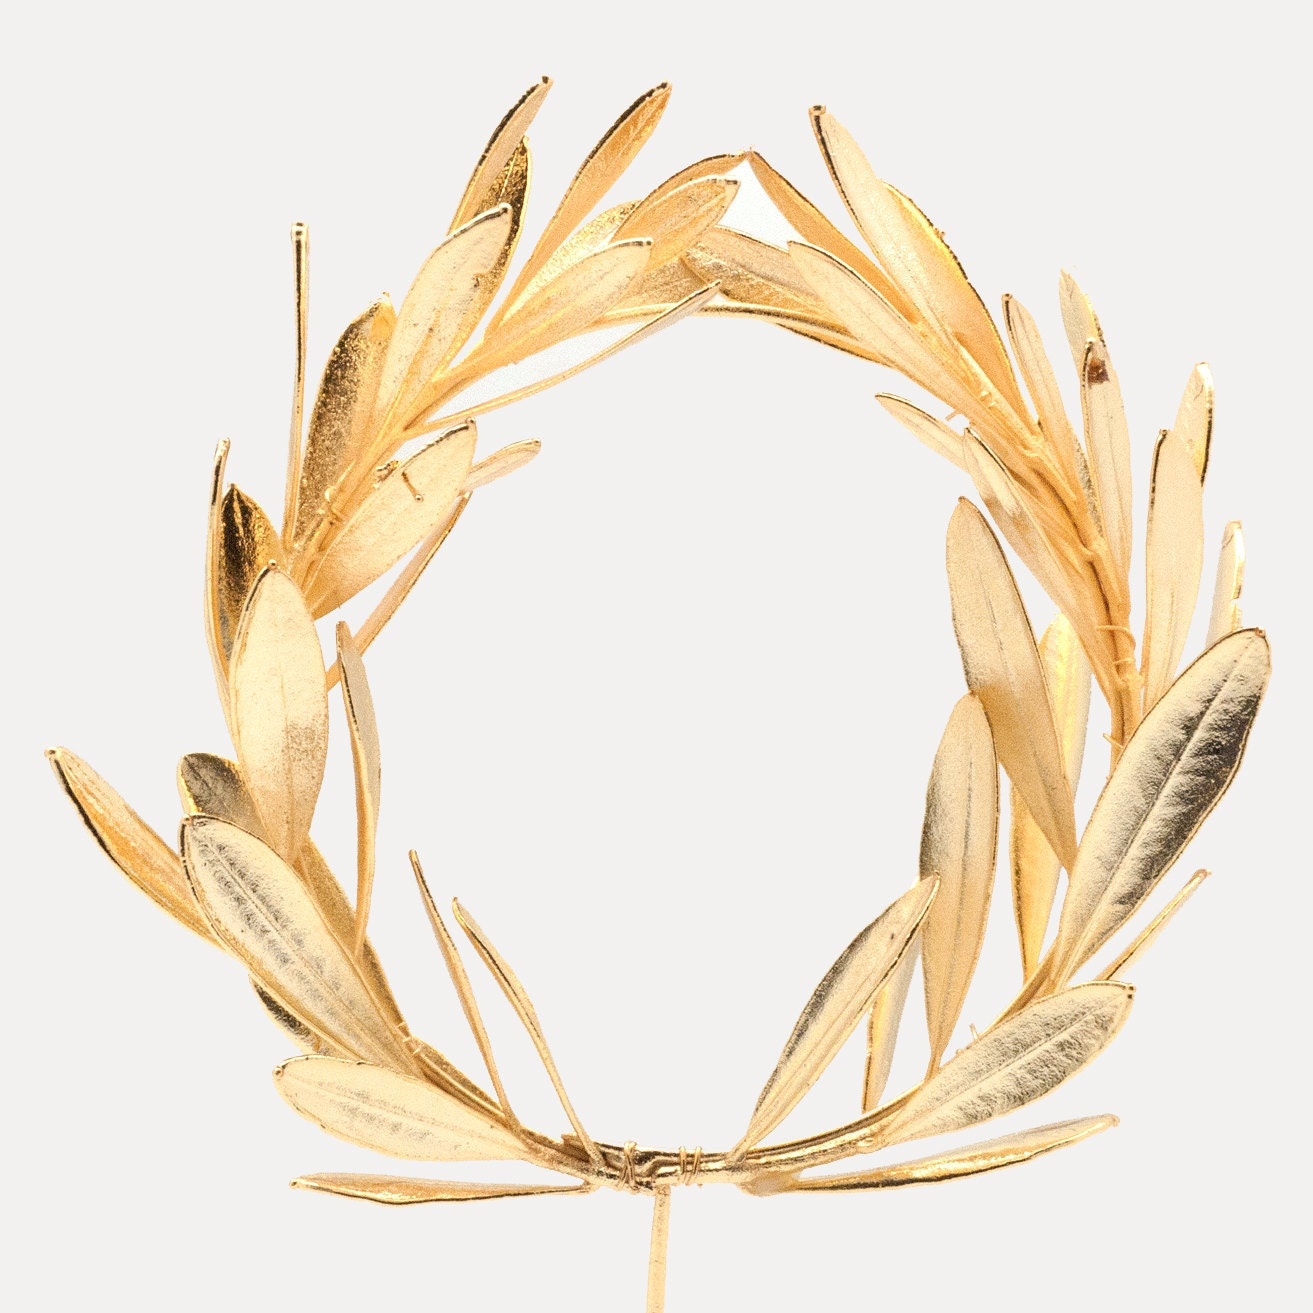 Greek Olive Tree Wreath Olive Tree Real Natural Branch Gold